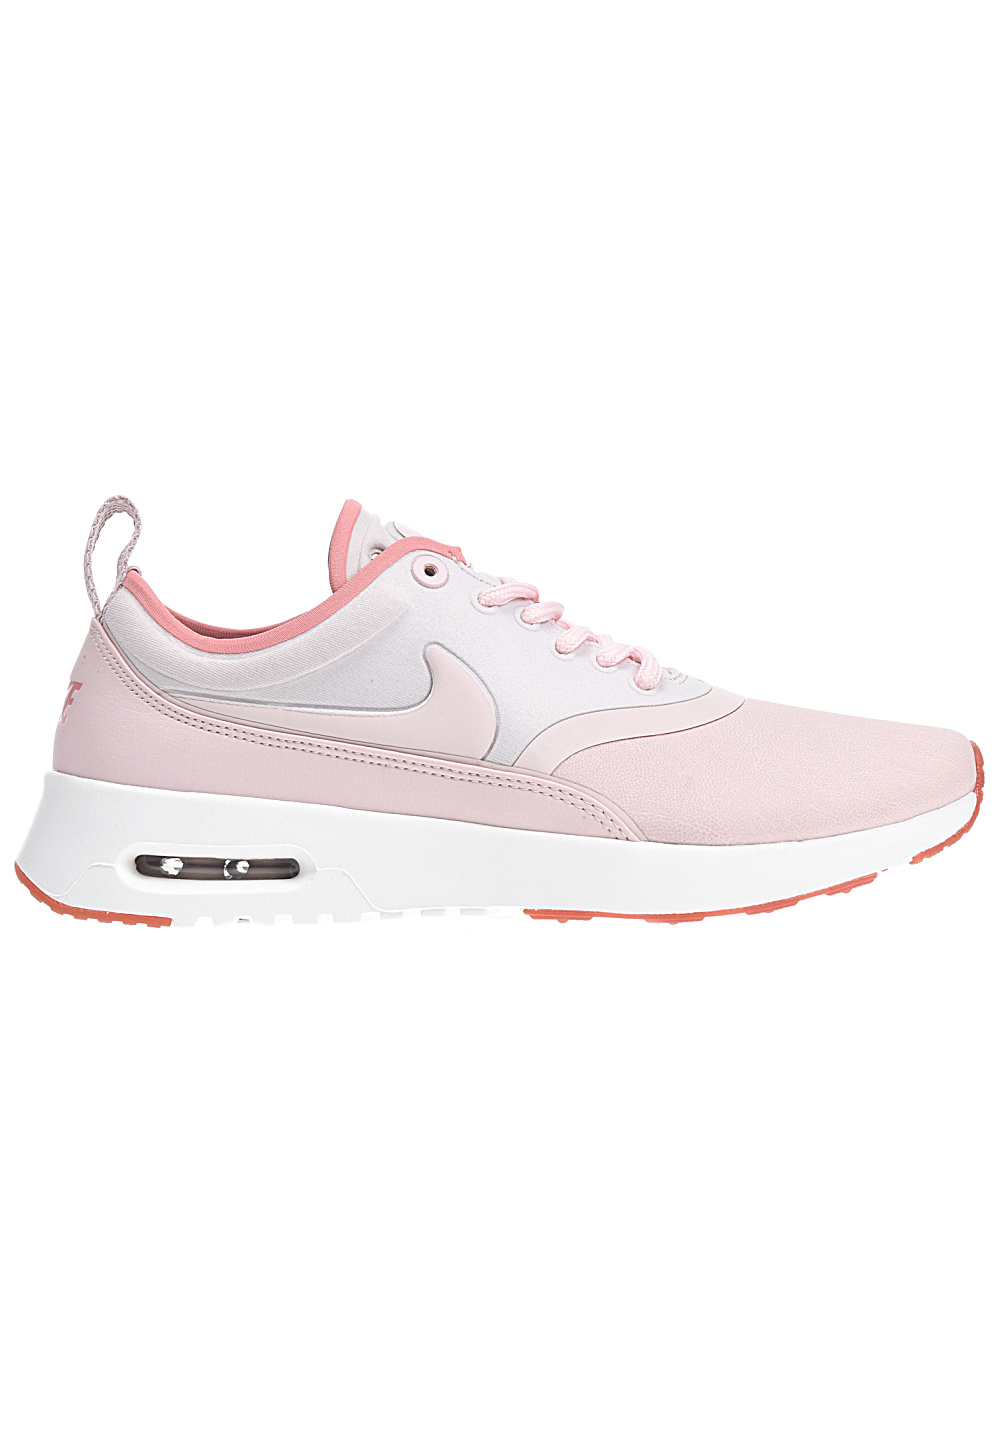 NIKE SPORTSWEAR Air Max Thea Ultra Premium Sneakers for Women Pink